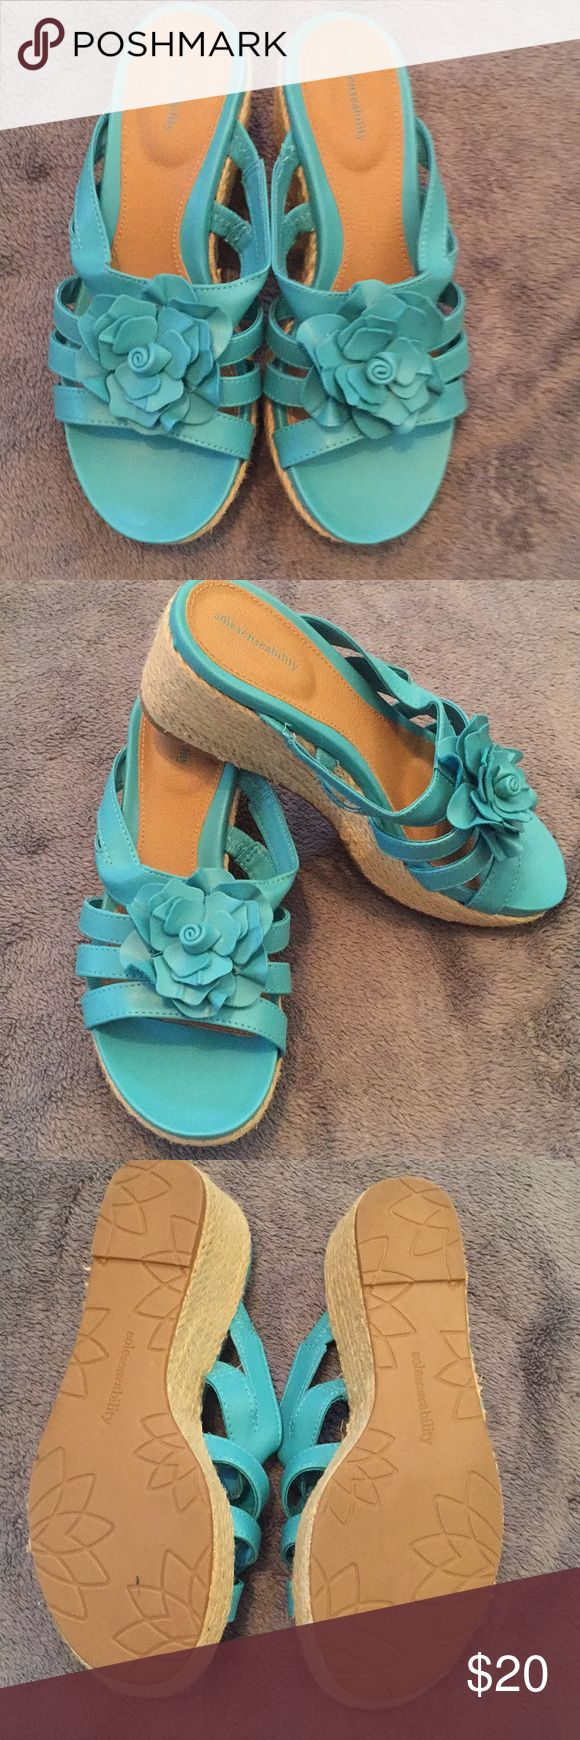 NEW Flower wedge sandals Turquoise wedges that are in pristine condition!  Beautiful color that is on trend right now.  Very comfortable shoes! sole senseability Shoes Wedges